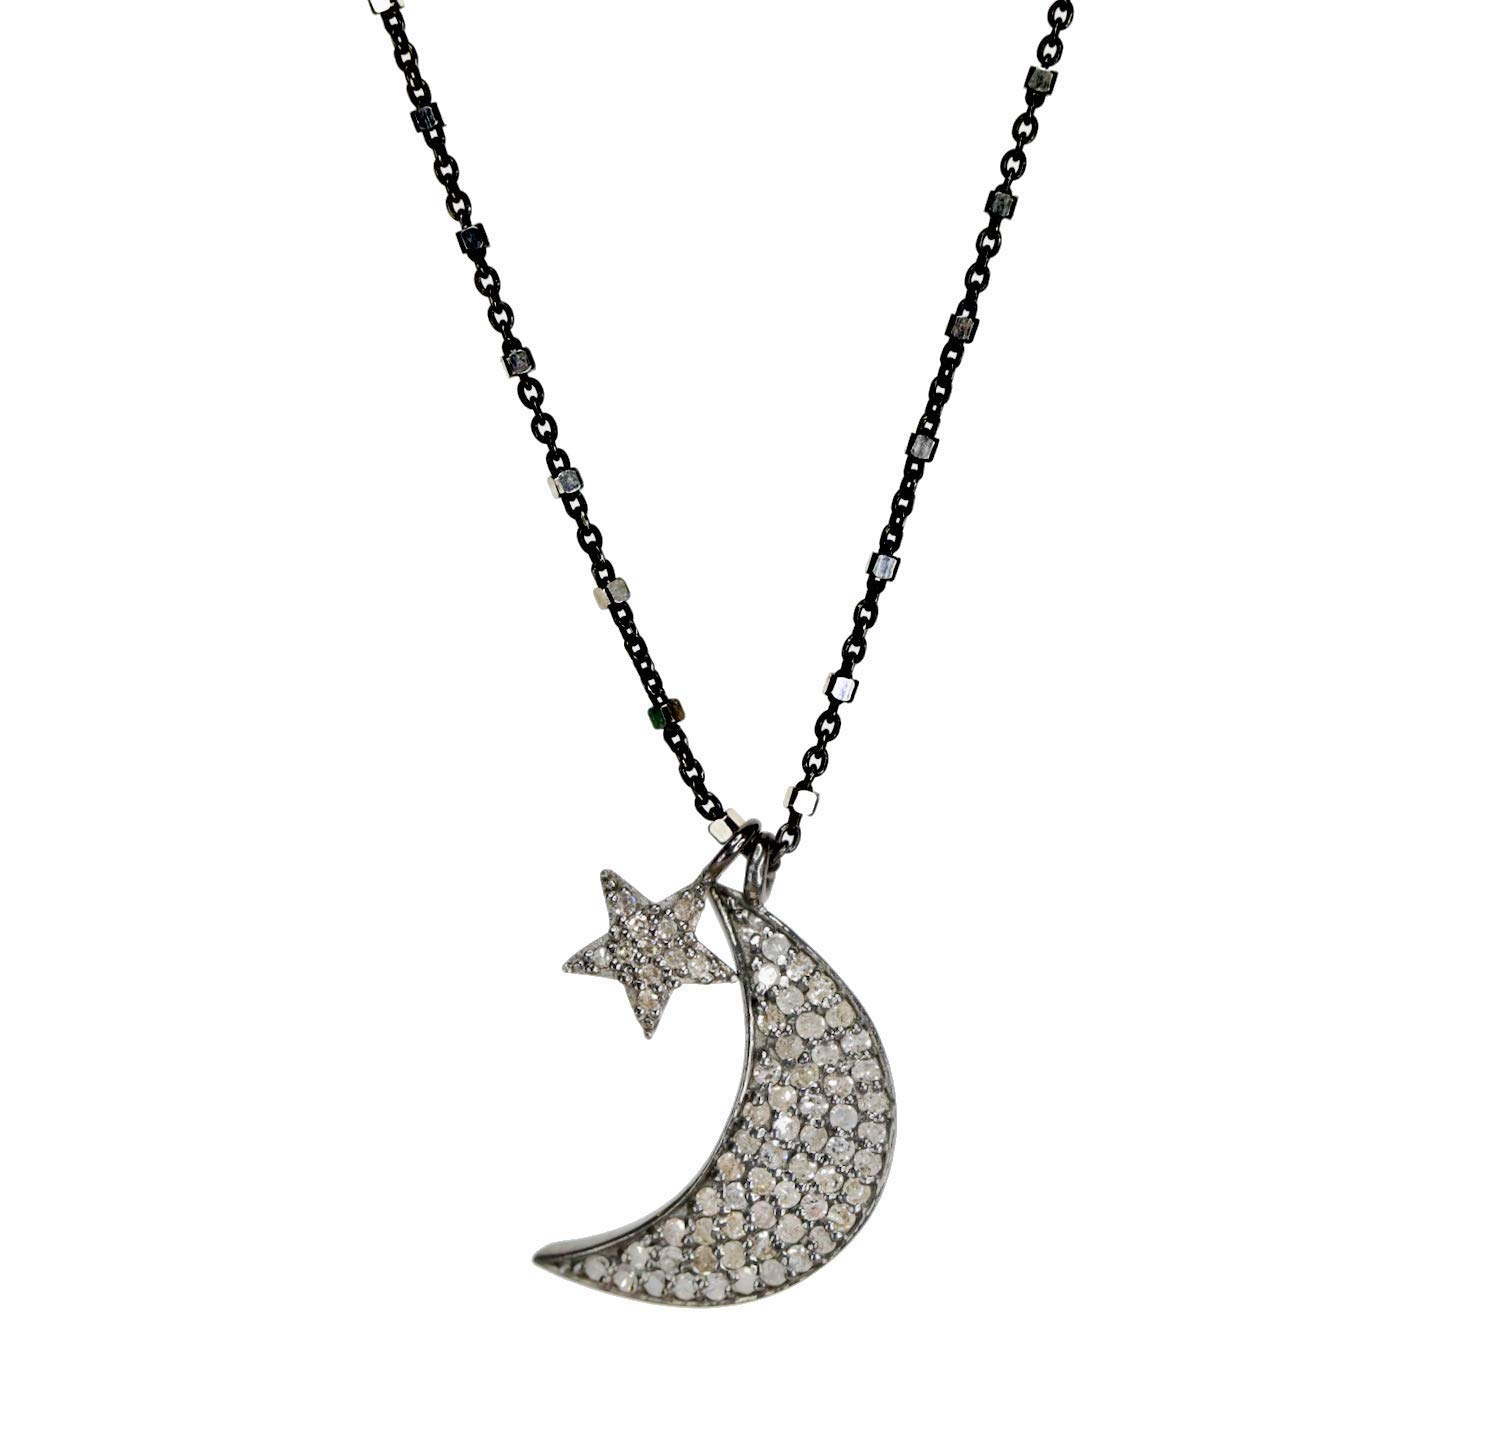 Gemingo New Fashion Design Blue Eye Necklace Hand Made Crescent Moon Jewelry For Women